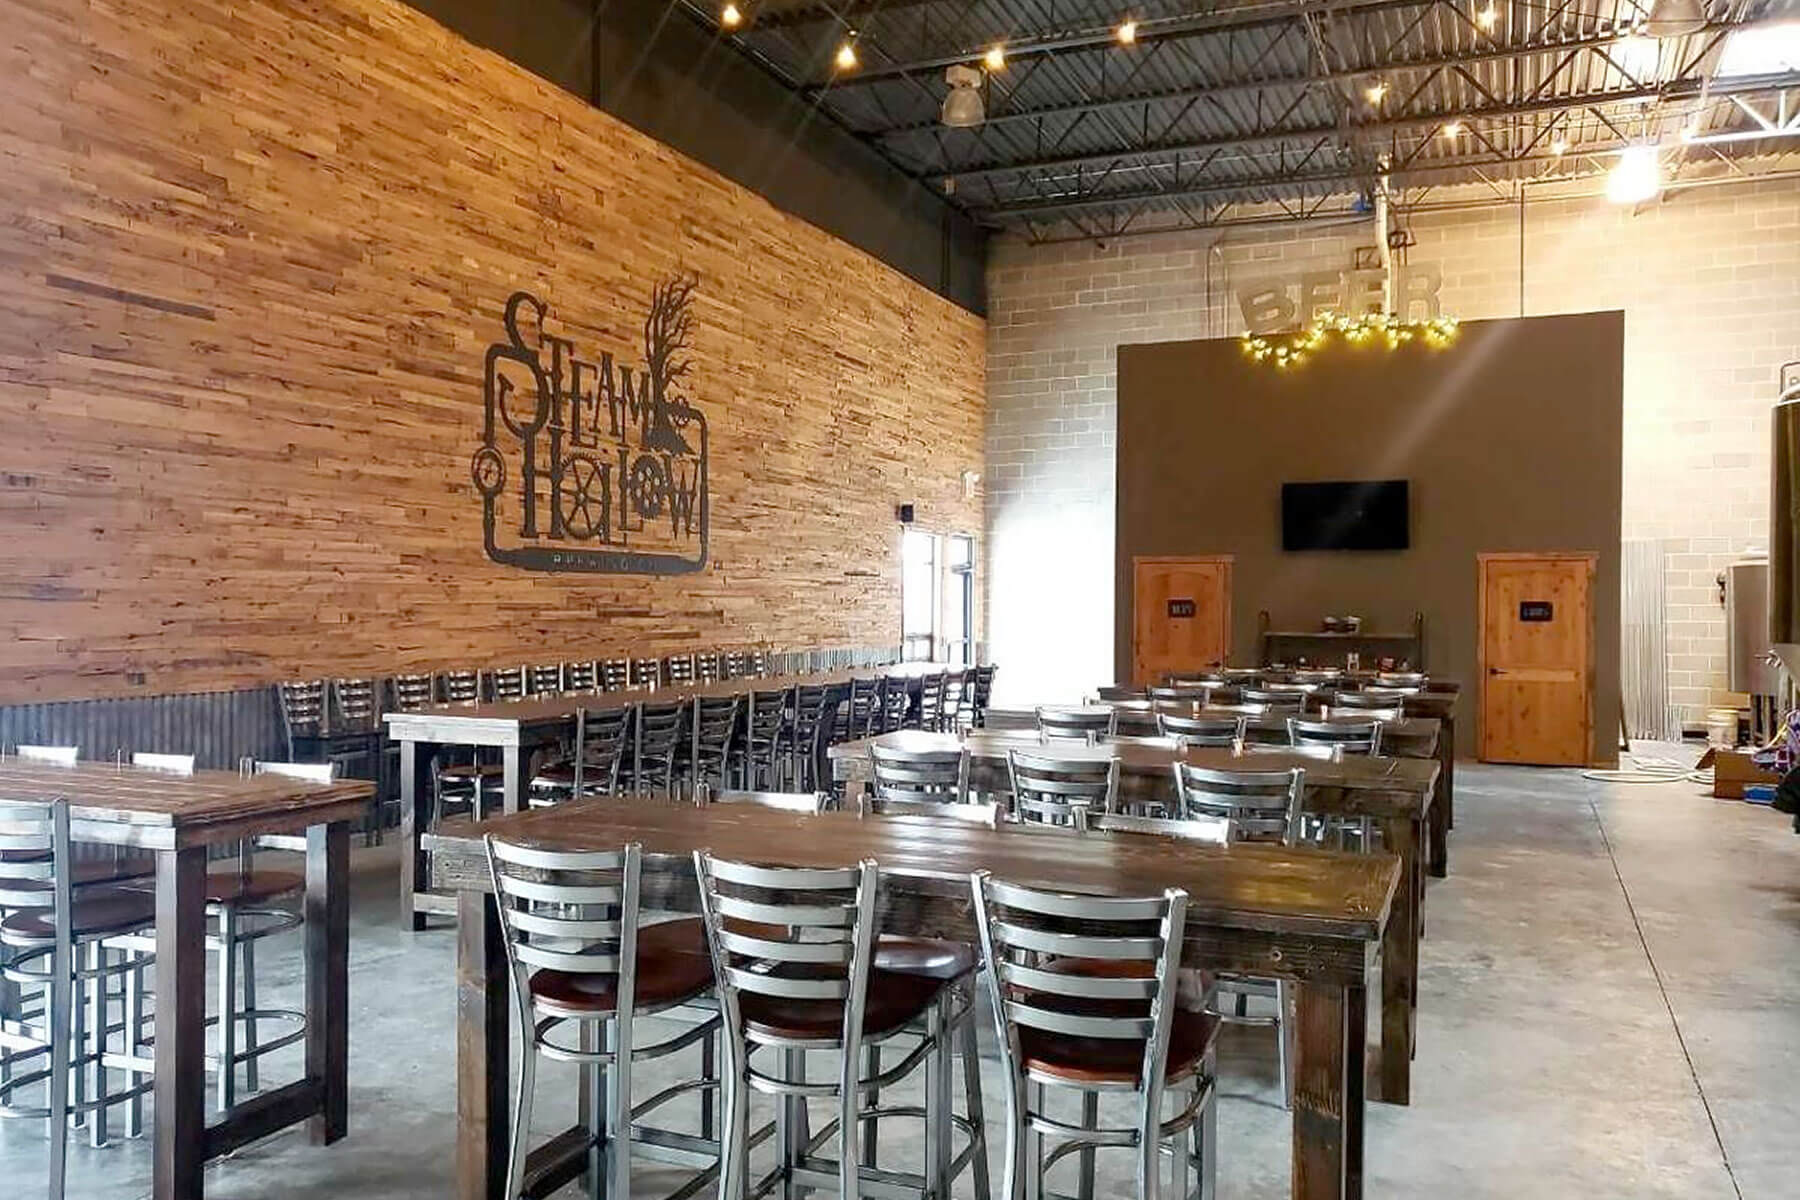 Inside the taproom at Steam Hollow Brewing Co. is located in Manteno, Illinois